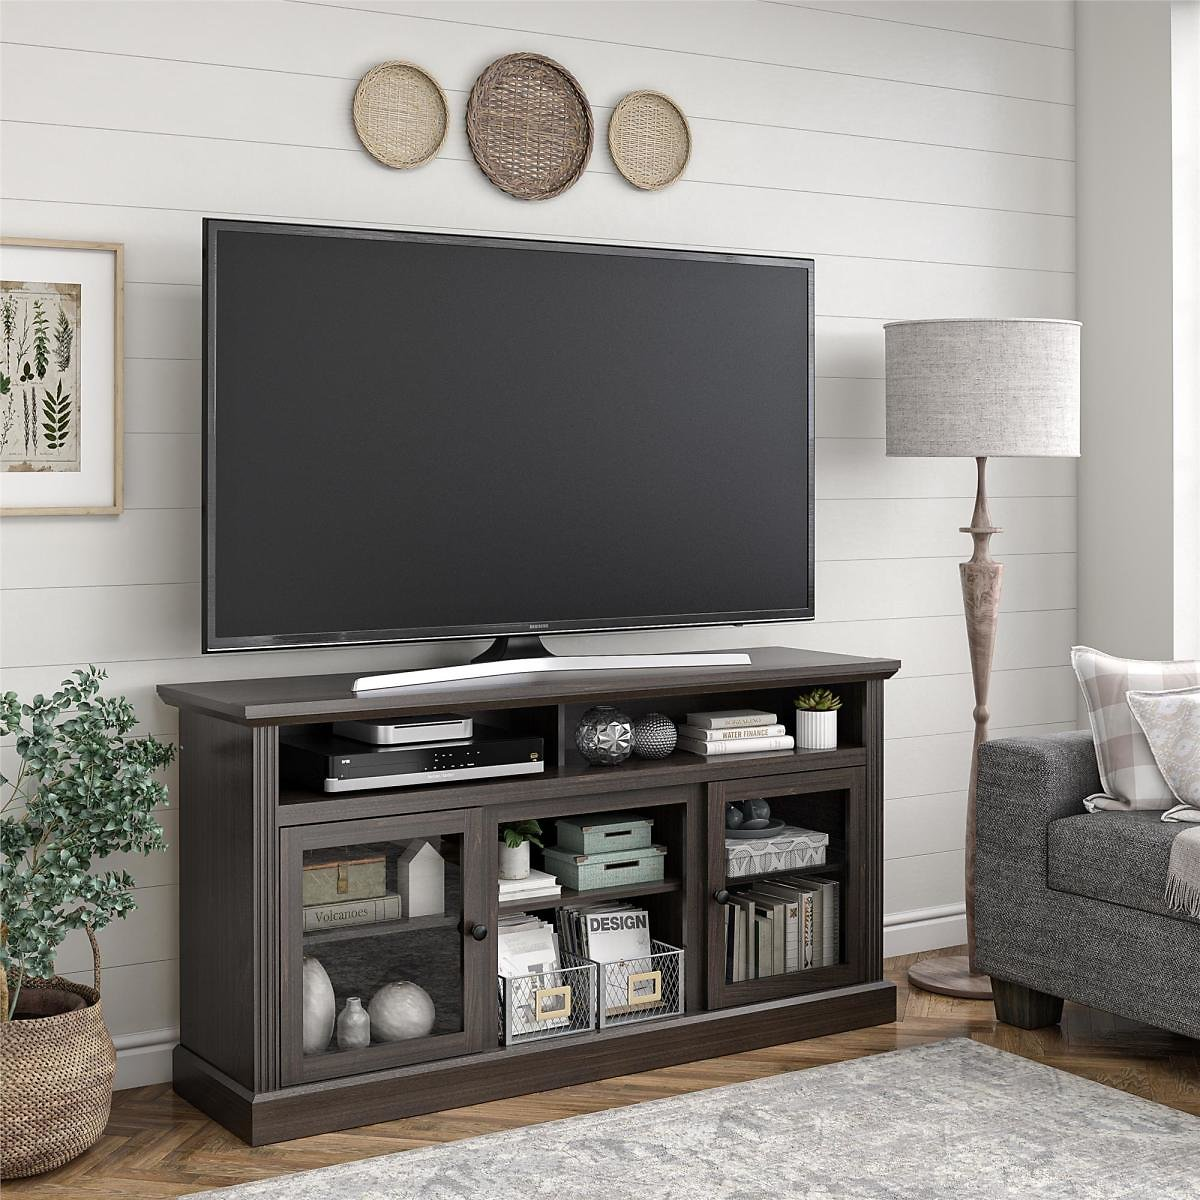 Ameriwood Home Leesburg TV Stand for TVs Up to 65